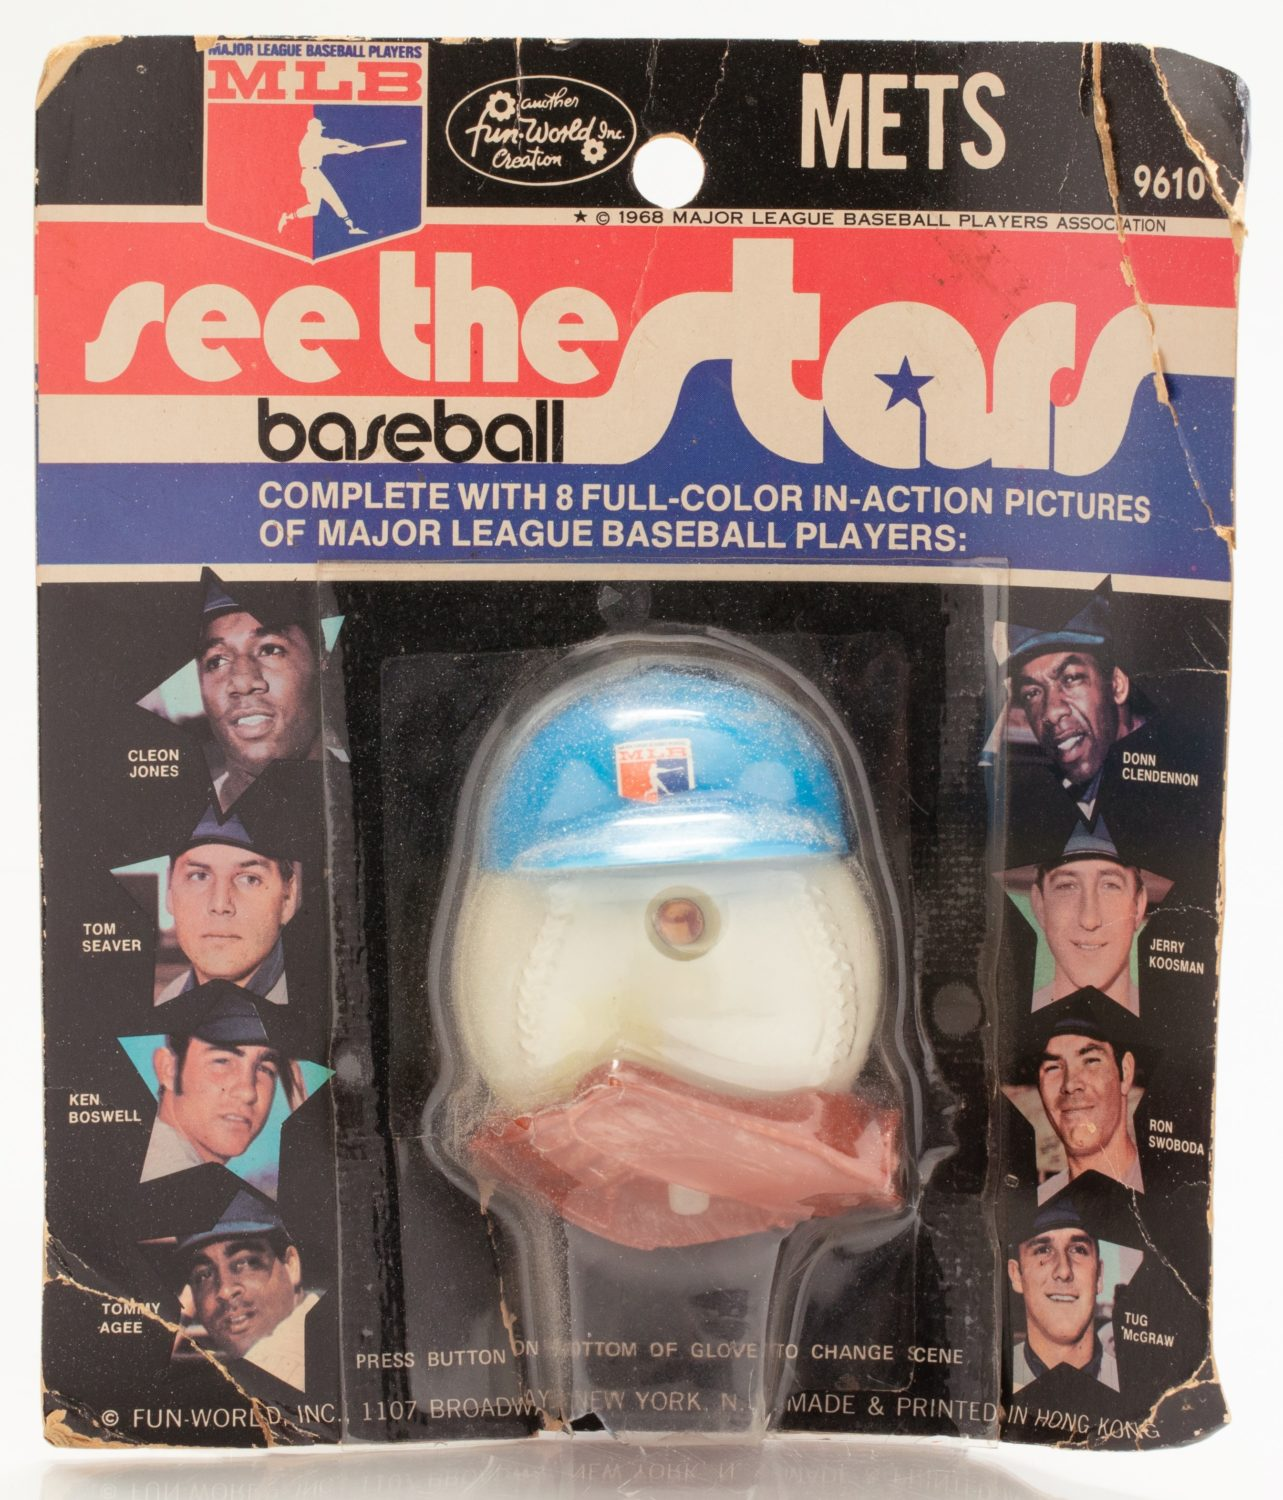 Fun World Toy with Player Action Photos in Its Packaging